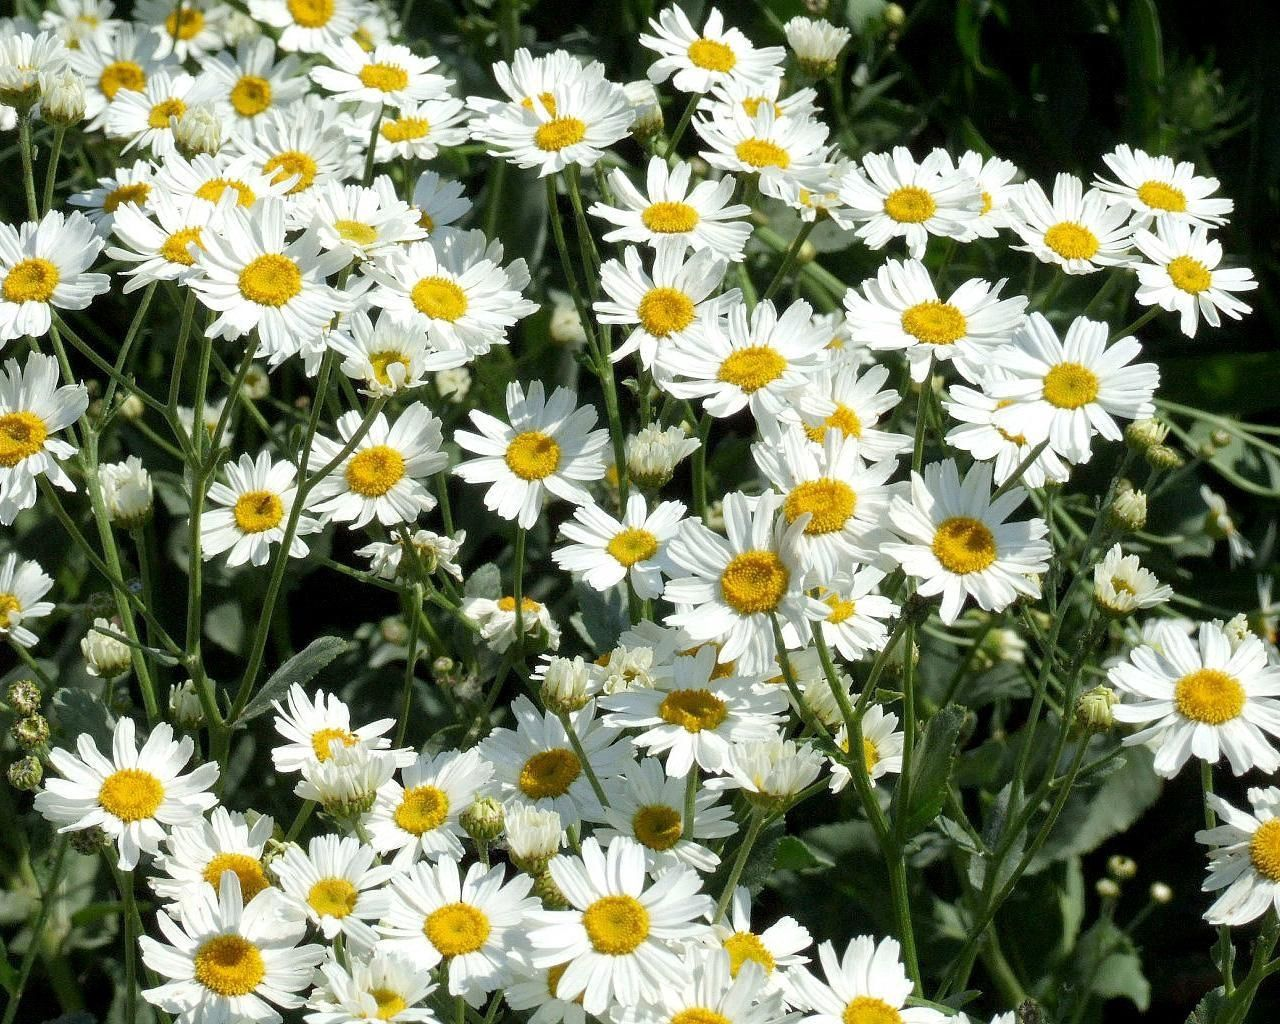 88459 download wallpaper Flowers, Camomile, Polyana, Glade, Greens, Sunny screensavers and pictures for free